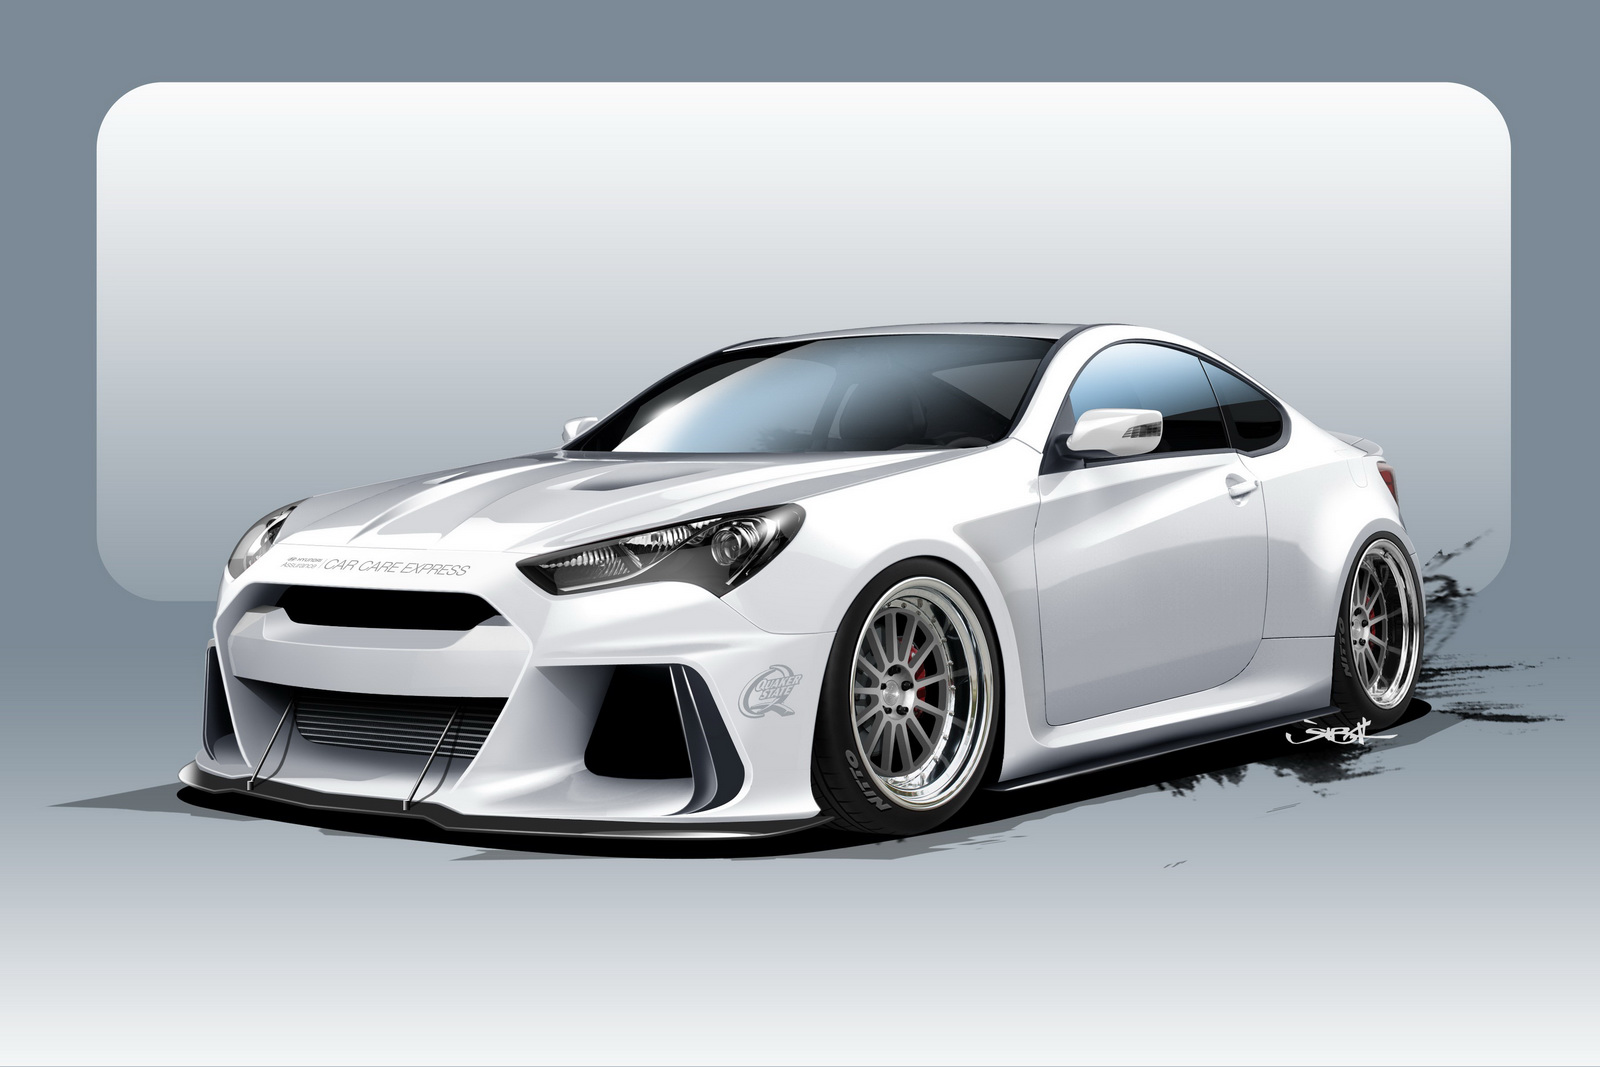 Wonderful SEMA ARK Performance Genesis Coupe